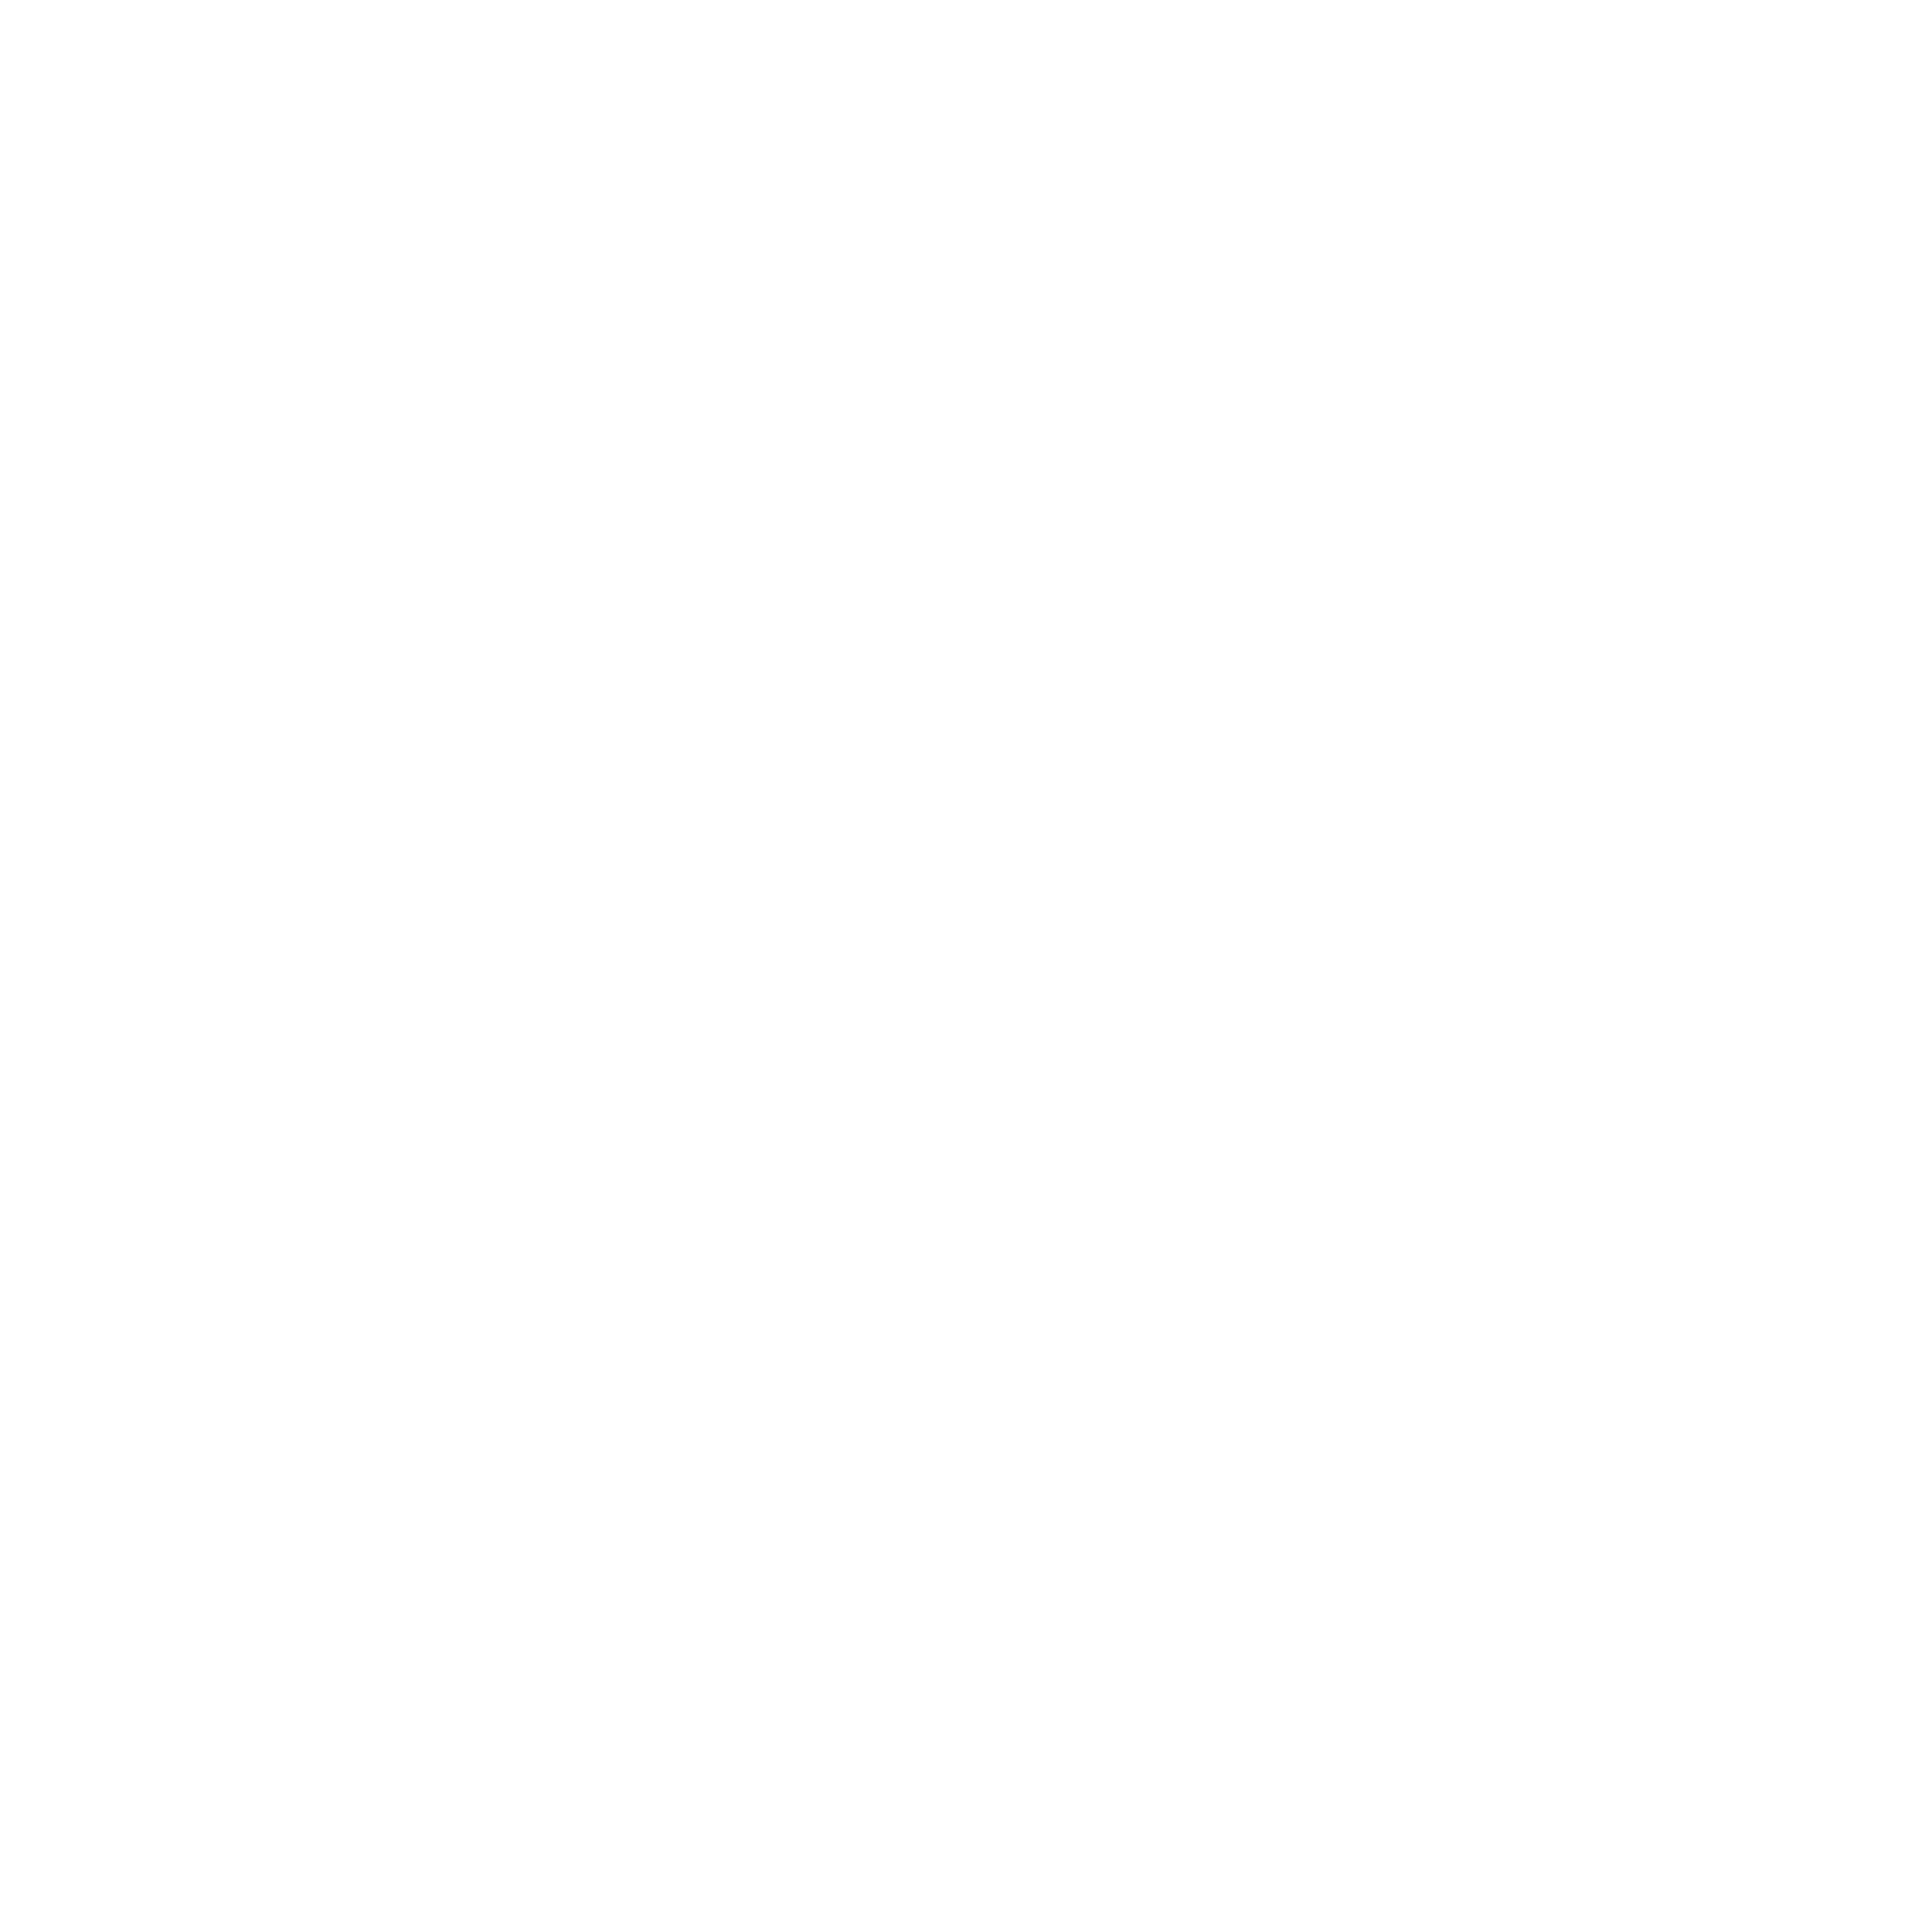 St Catherine of Siena Catholic Church